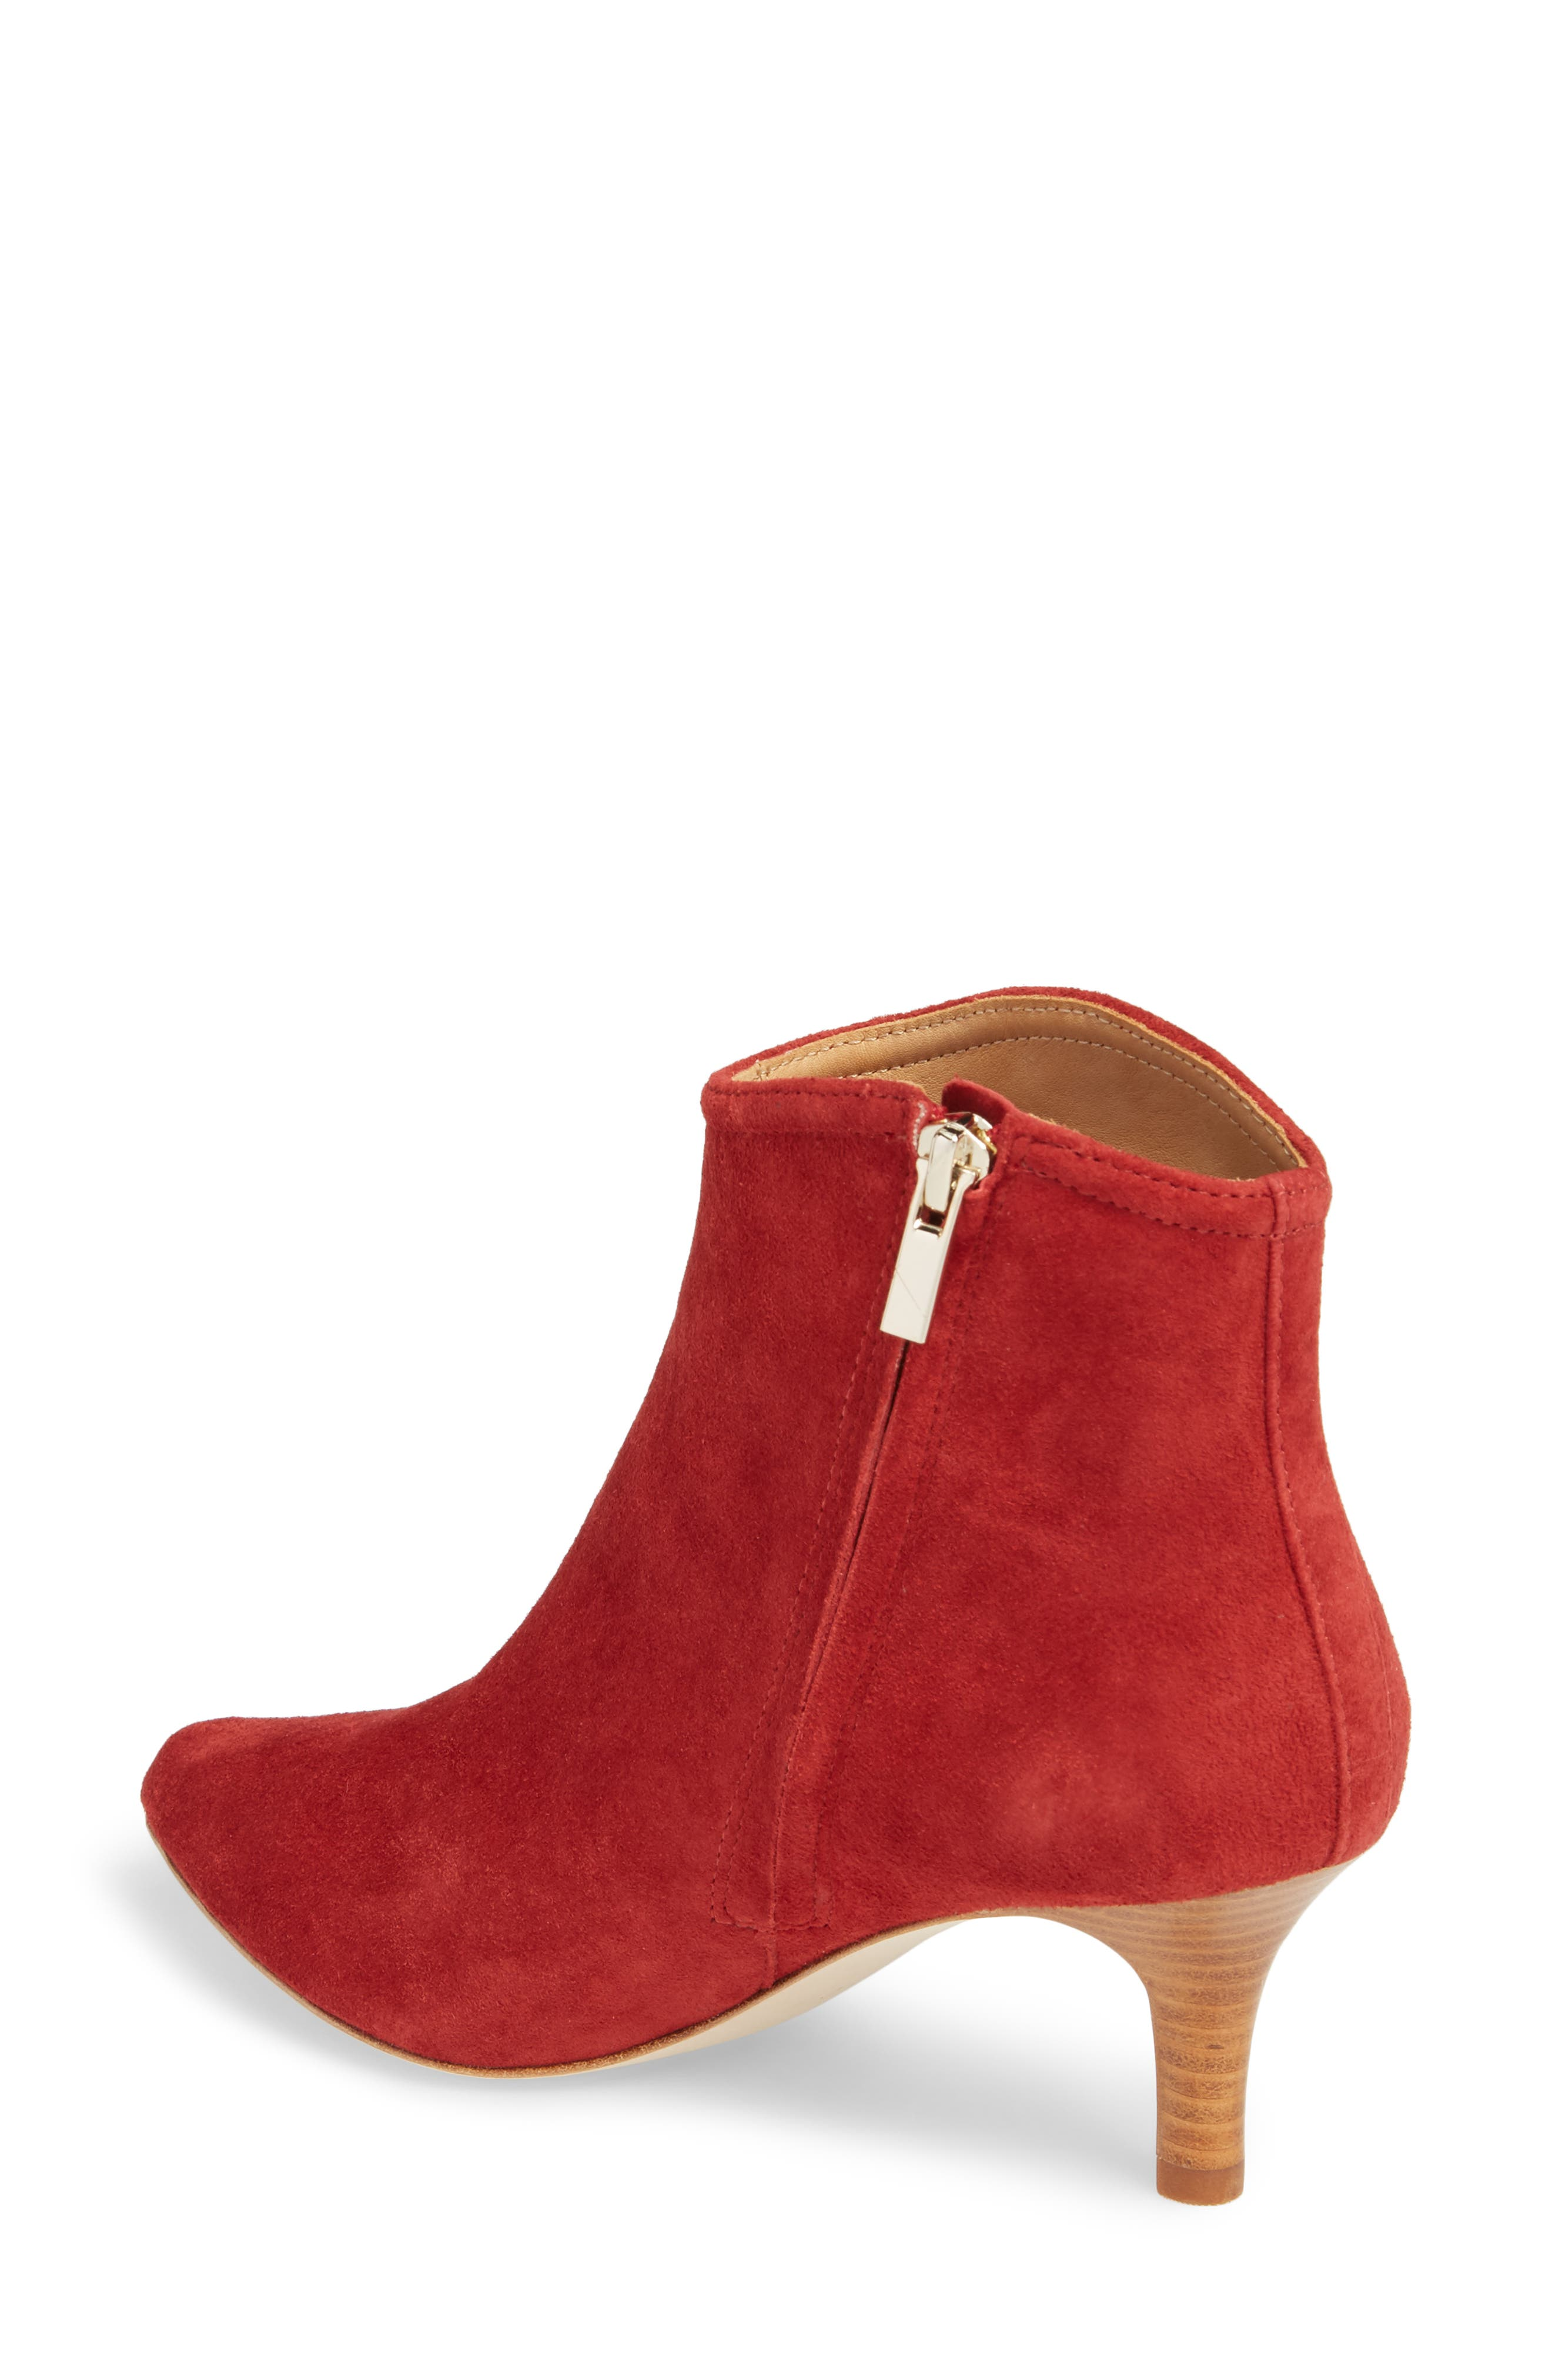 Ralean Almond Toe Bootie,                             Alternate thumbnail 2, color,                             Currant